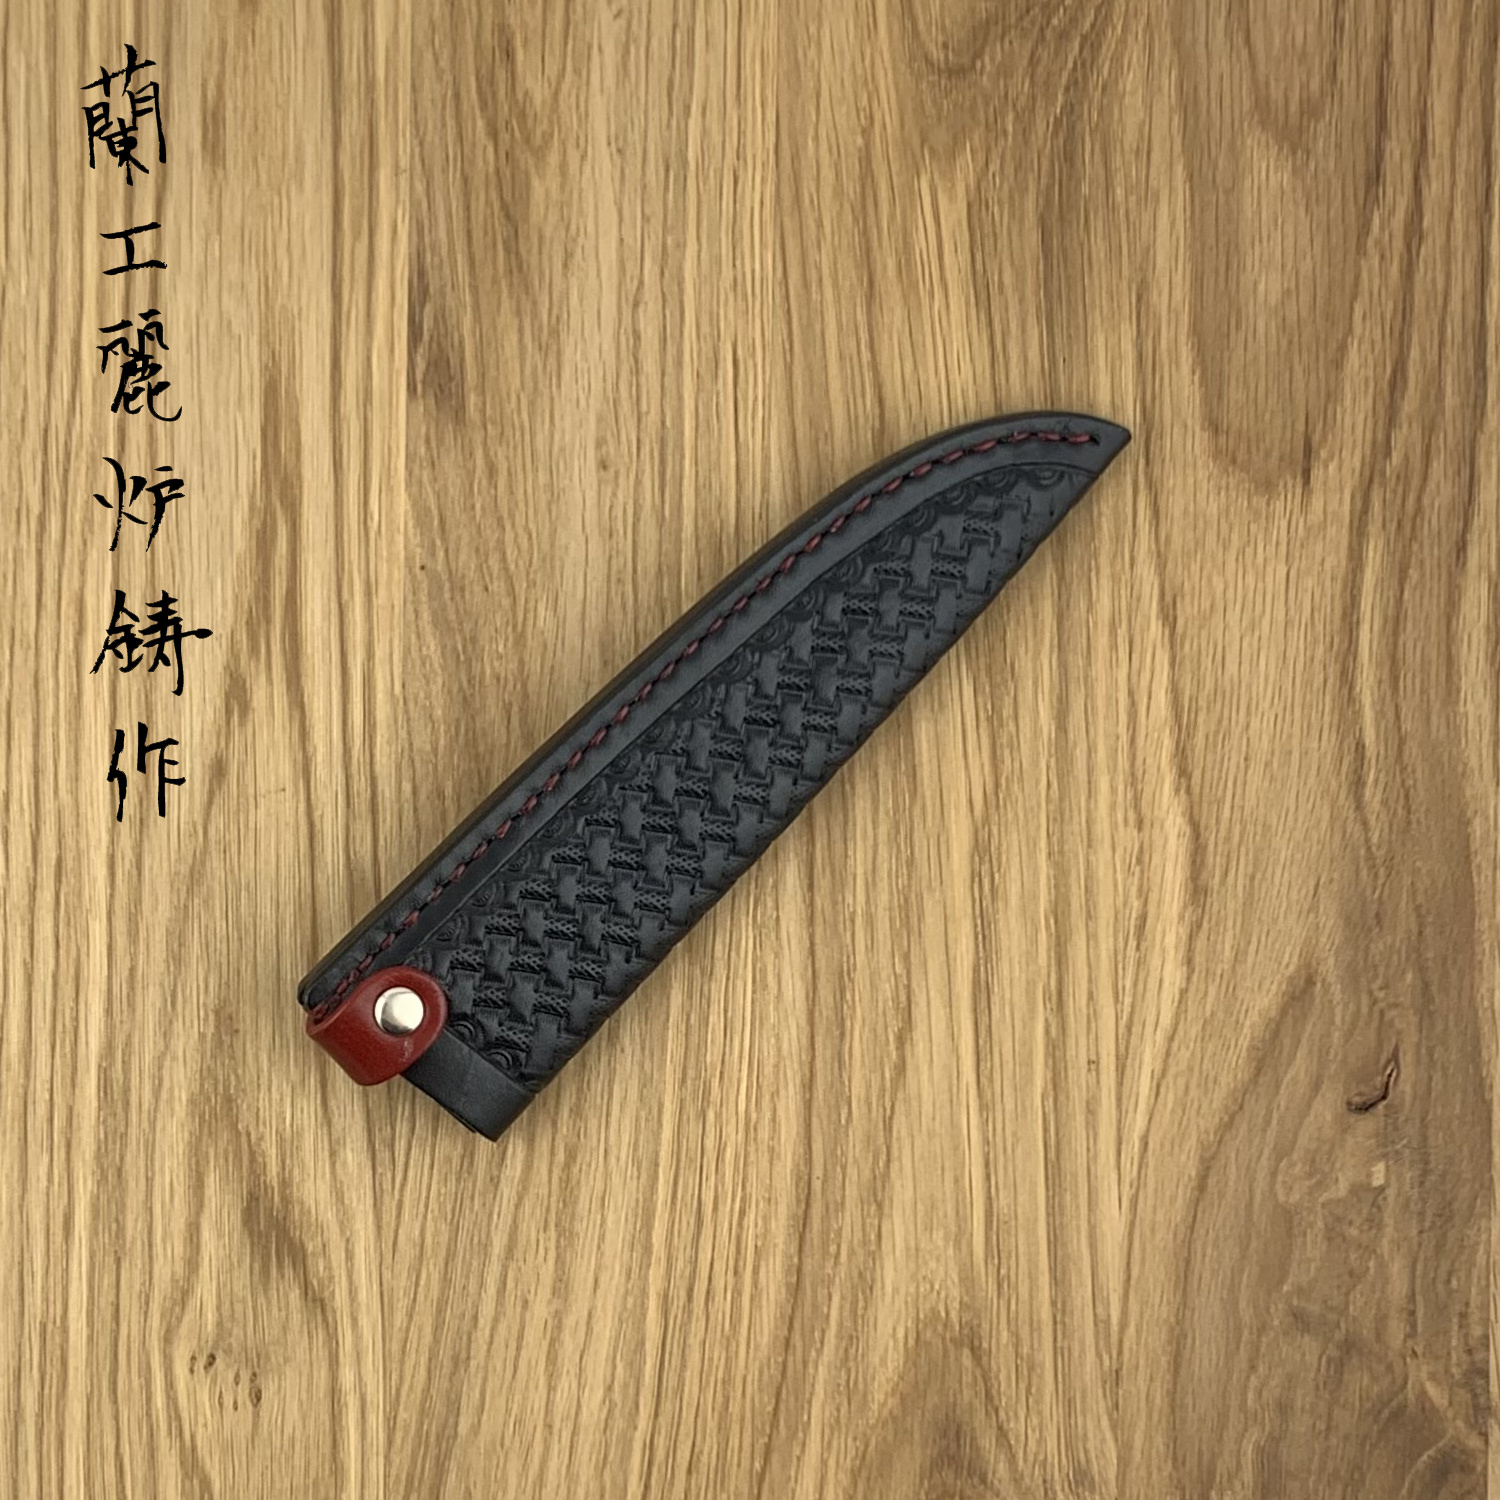 Ryusen leather sheath LS-106 150mm petty Black